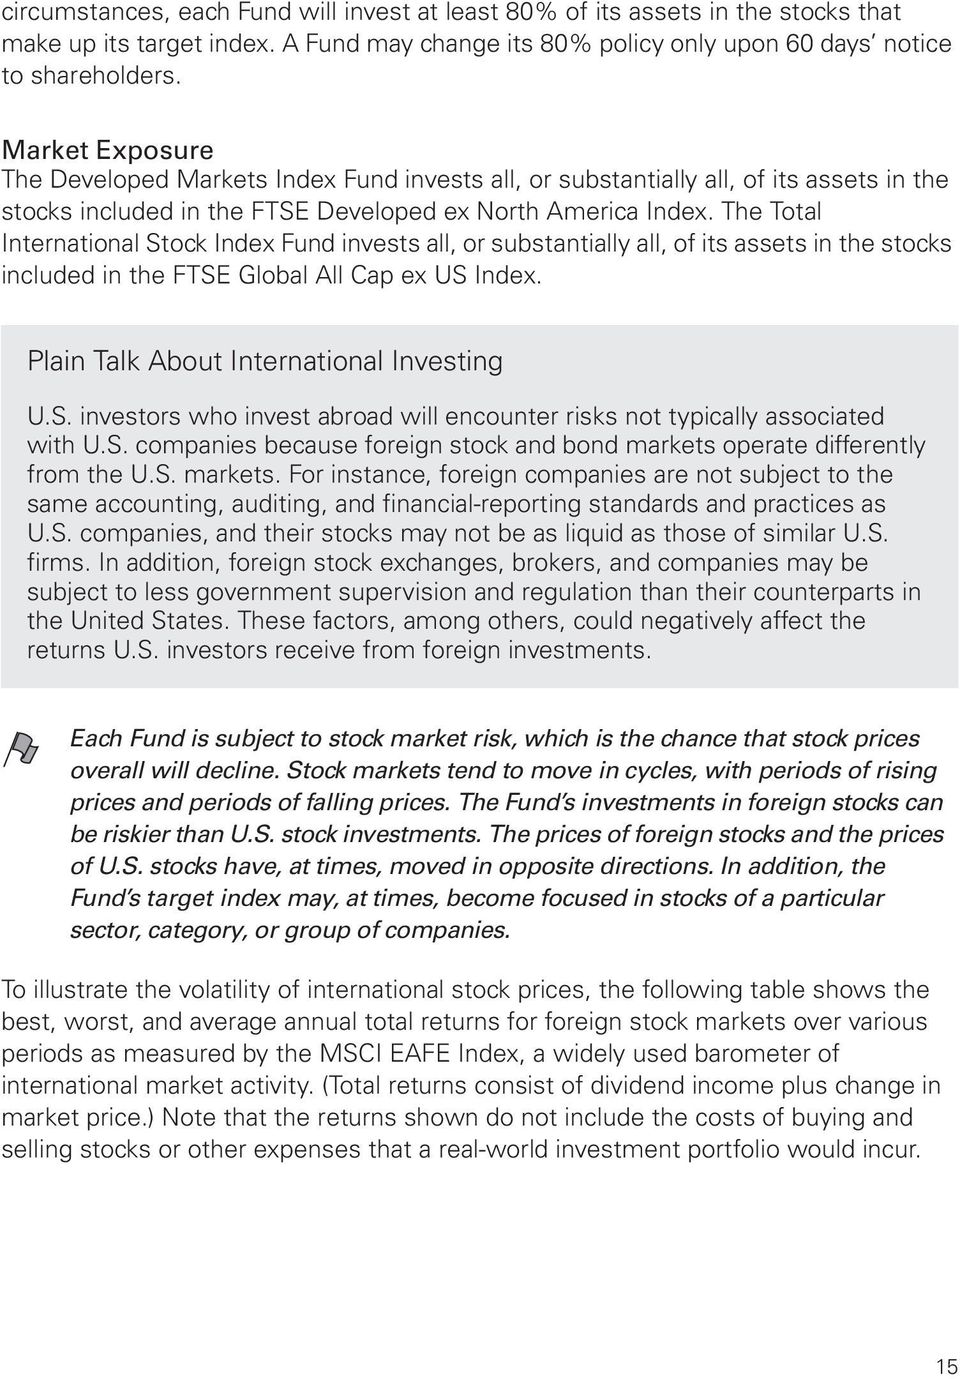 The Total International Stock Index Fund invests all, or substantially all, of its assets in the stocks included in the FTSE Global All Cap ex US Index. Plain Talk About International Investing U.S. investors who invest abroad will encounter risks not typically associated with U.